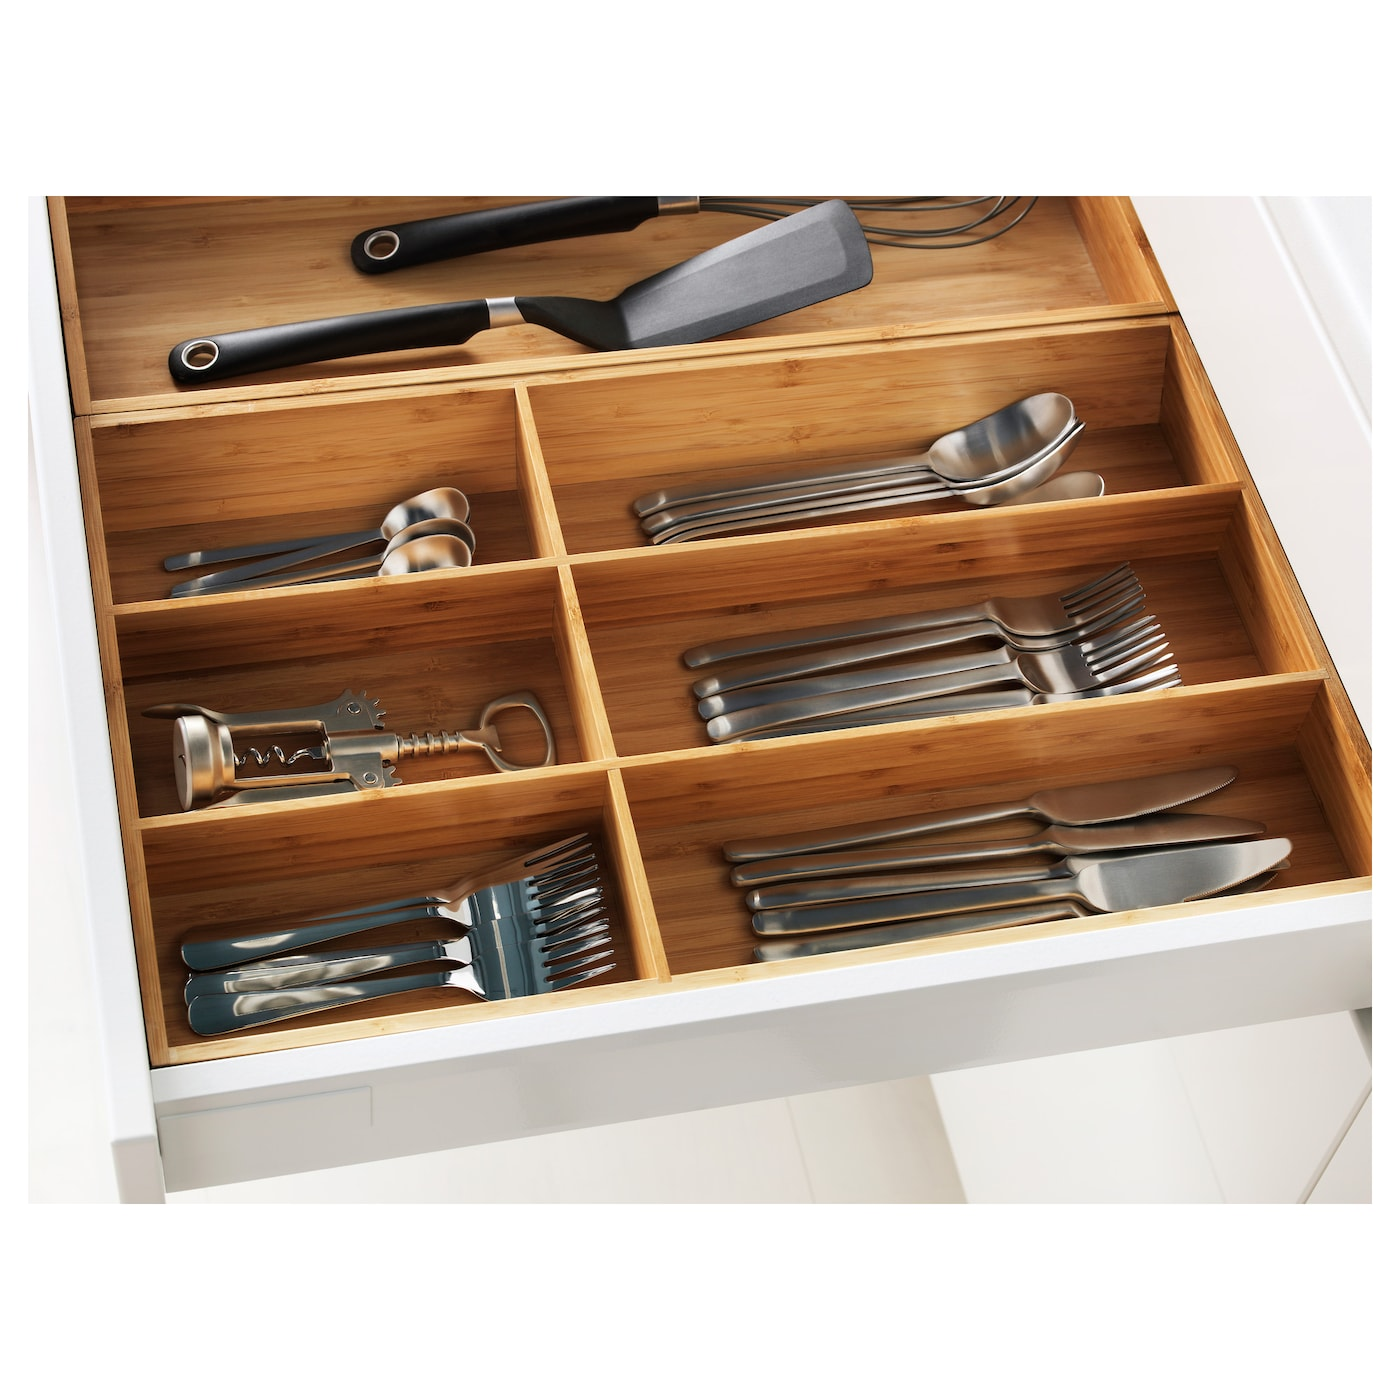 variera cutlery tray bamboo 32x50 cm ikea. Black Bedroom Furniture Sets. Home Design Ideas